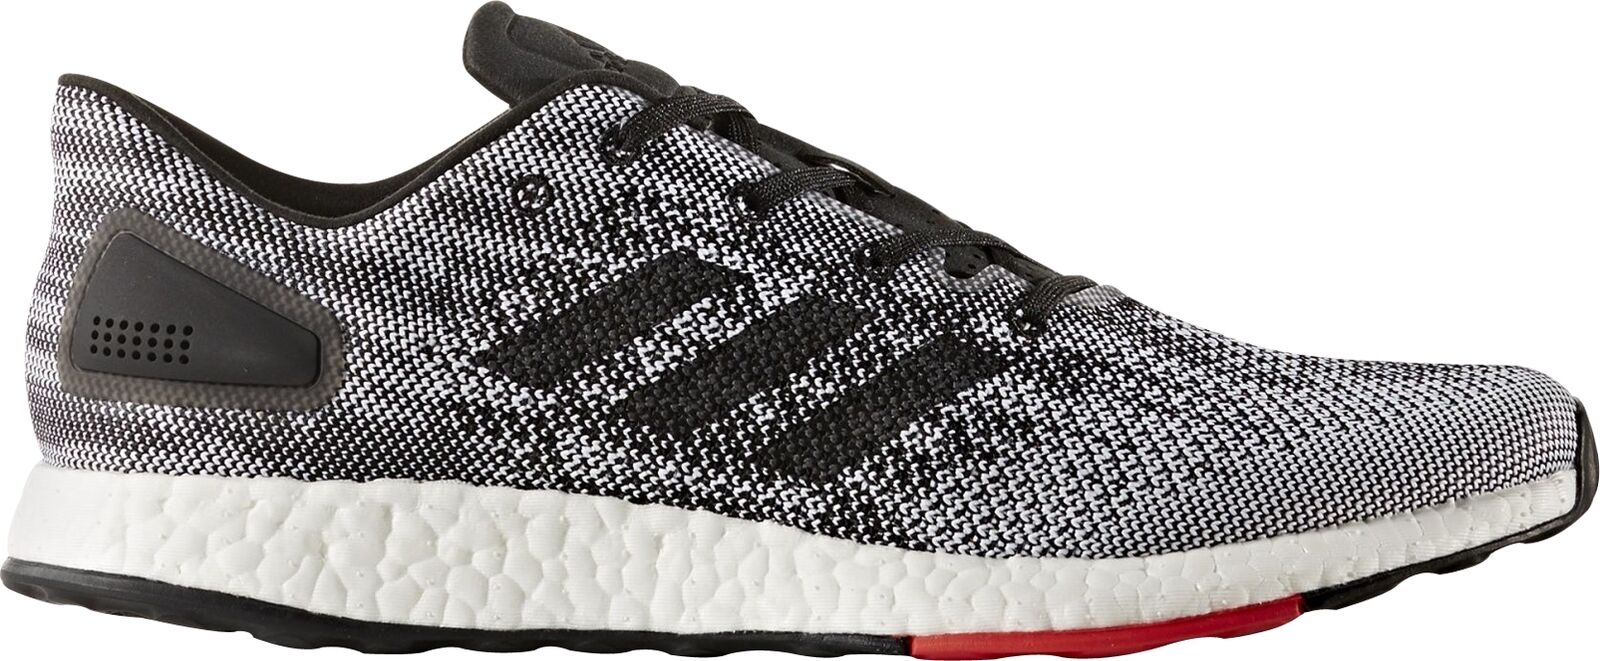 Adidas Pure Boost DPR Mens Running schuhe grau Cushioned Trainers